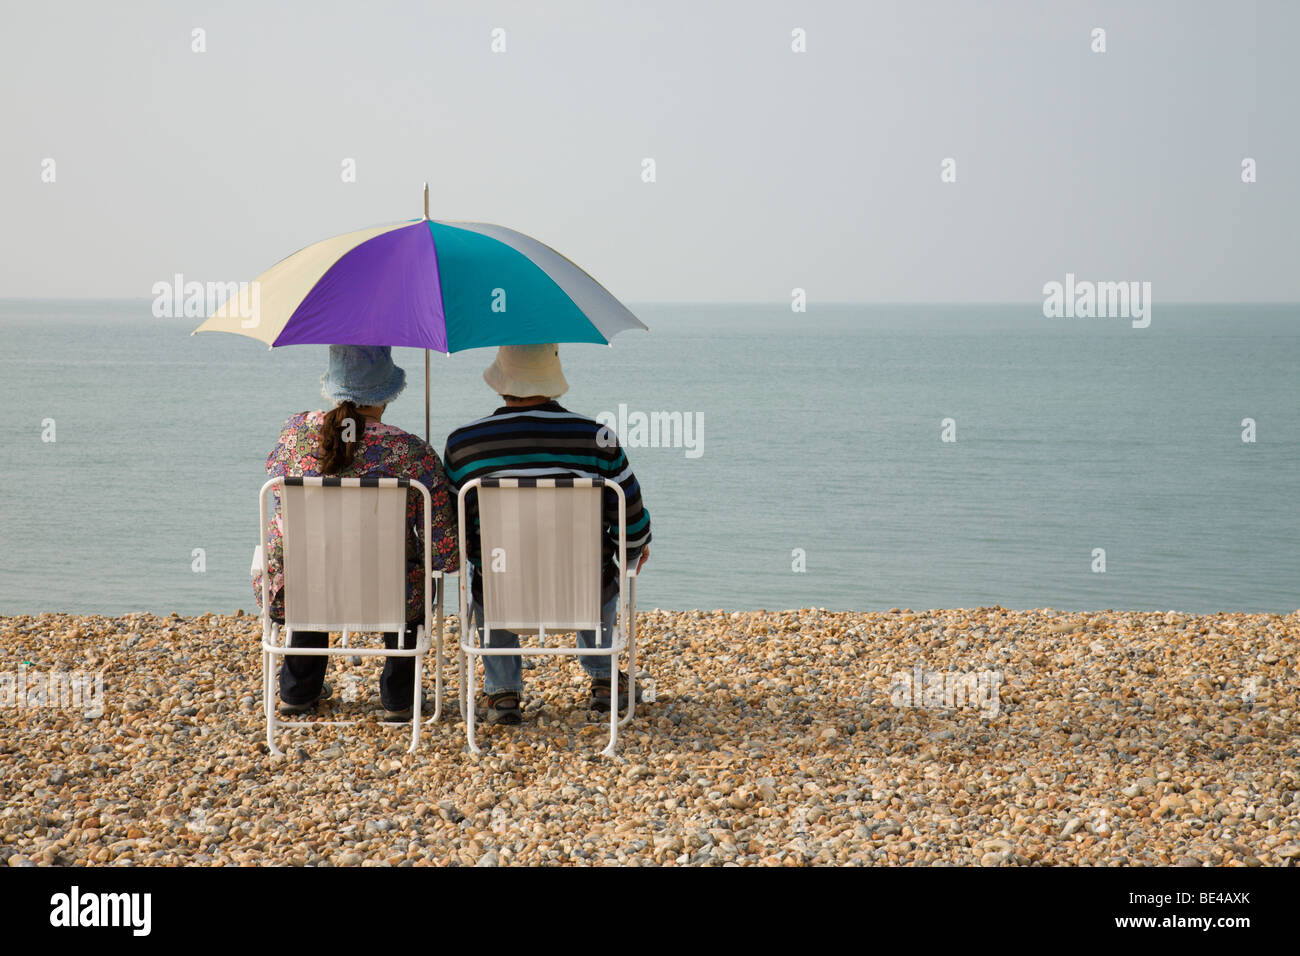 A couple sharing the moment. - Stock Image